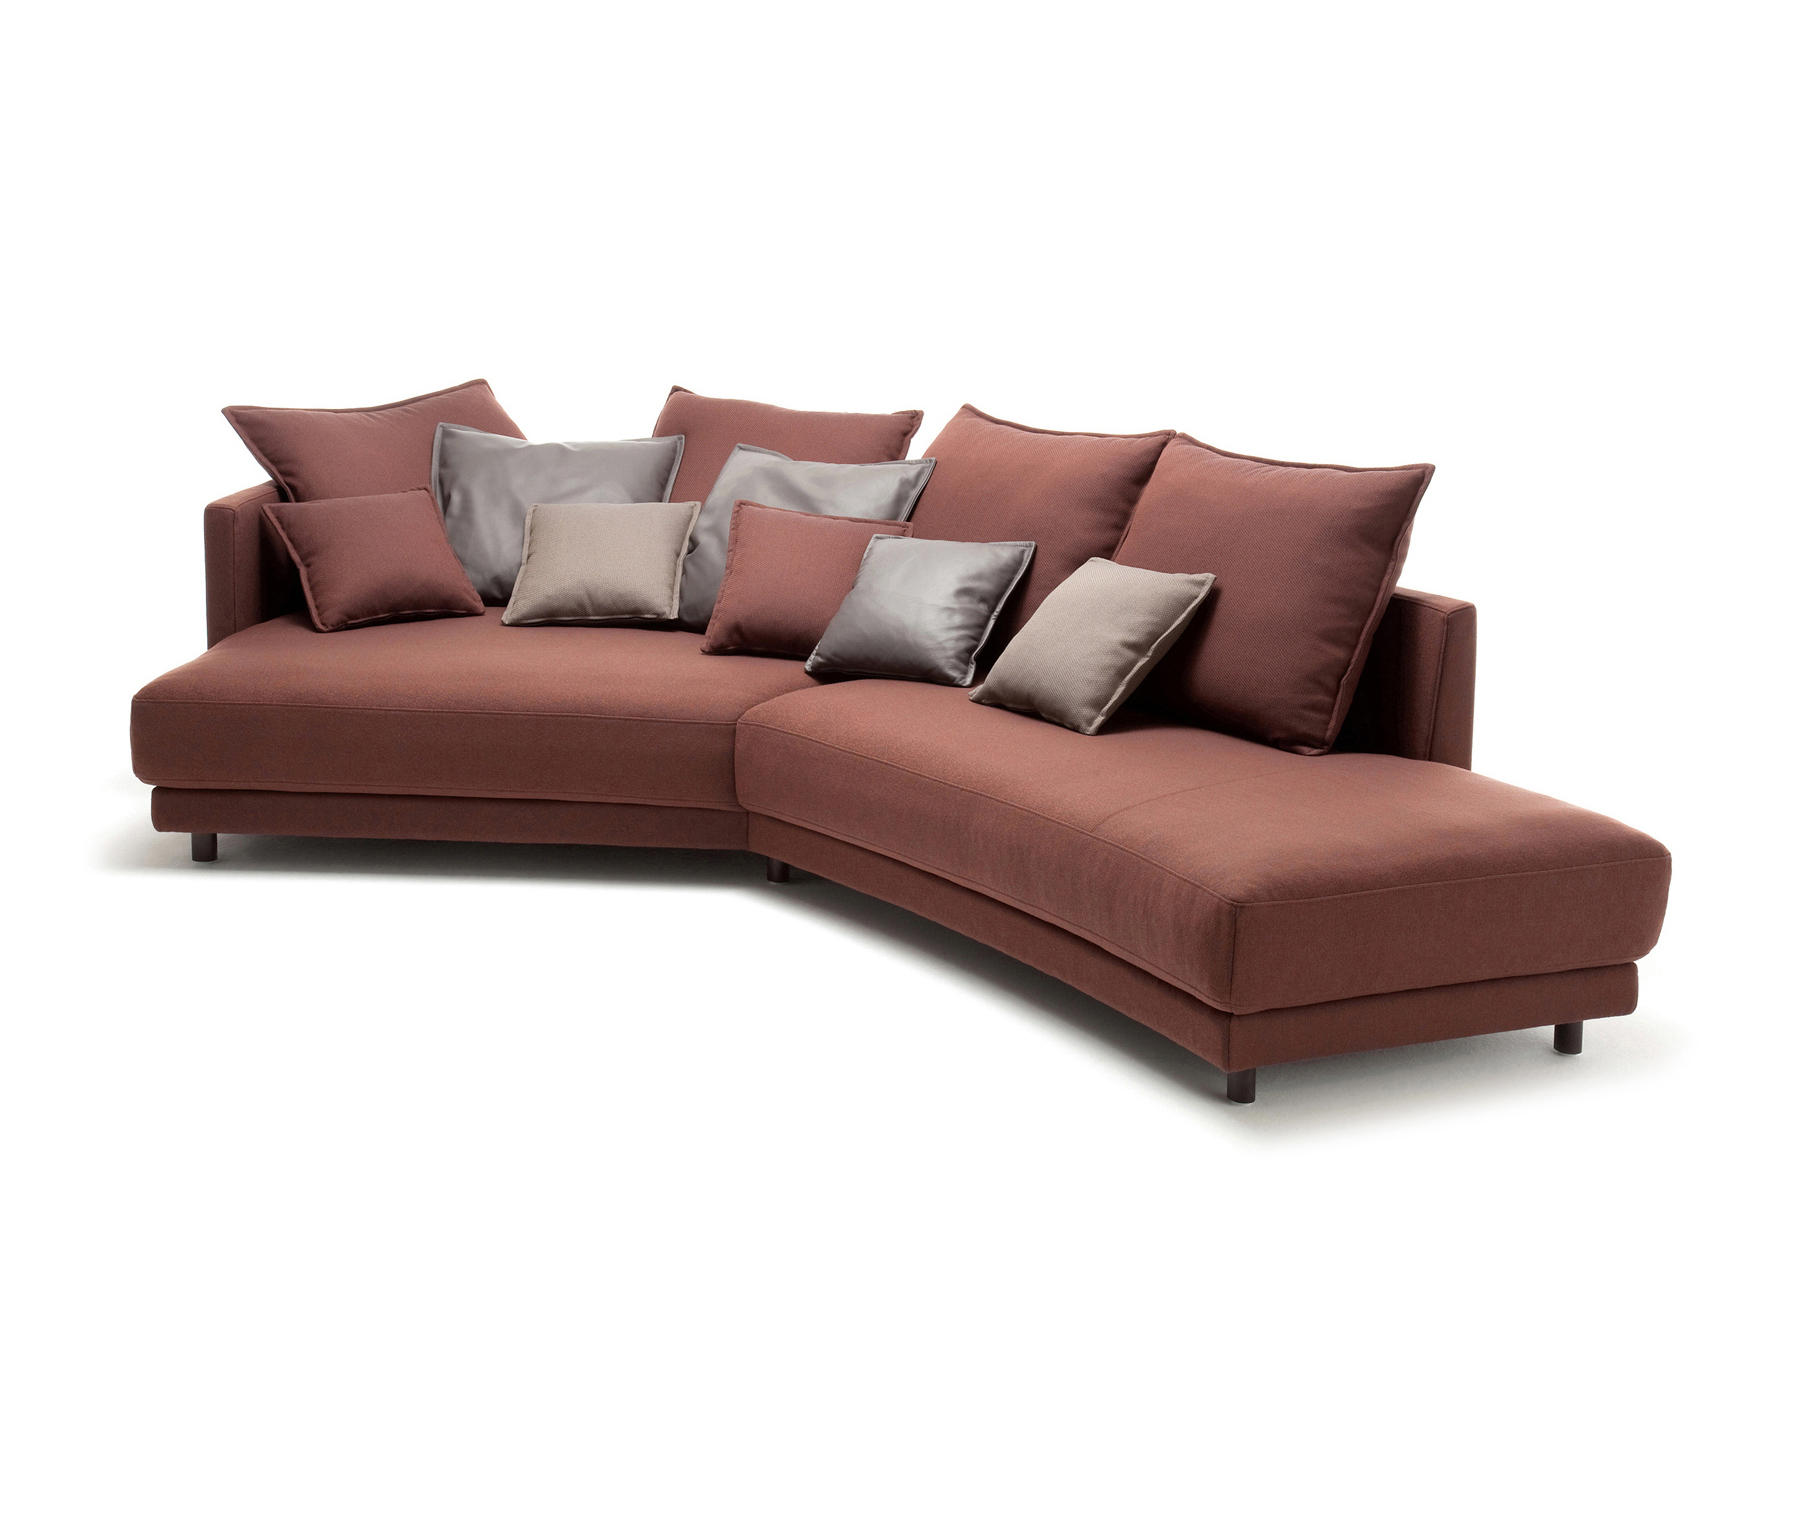 Rolf Benz Sofa Ebay Majestic Rolf Benz Sofa To Decorate Luxury Room Interior